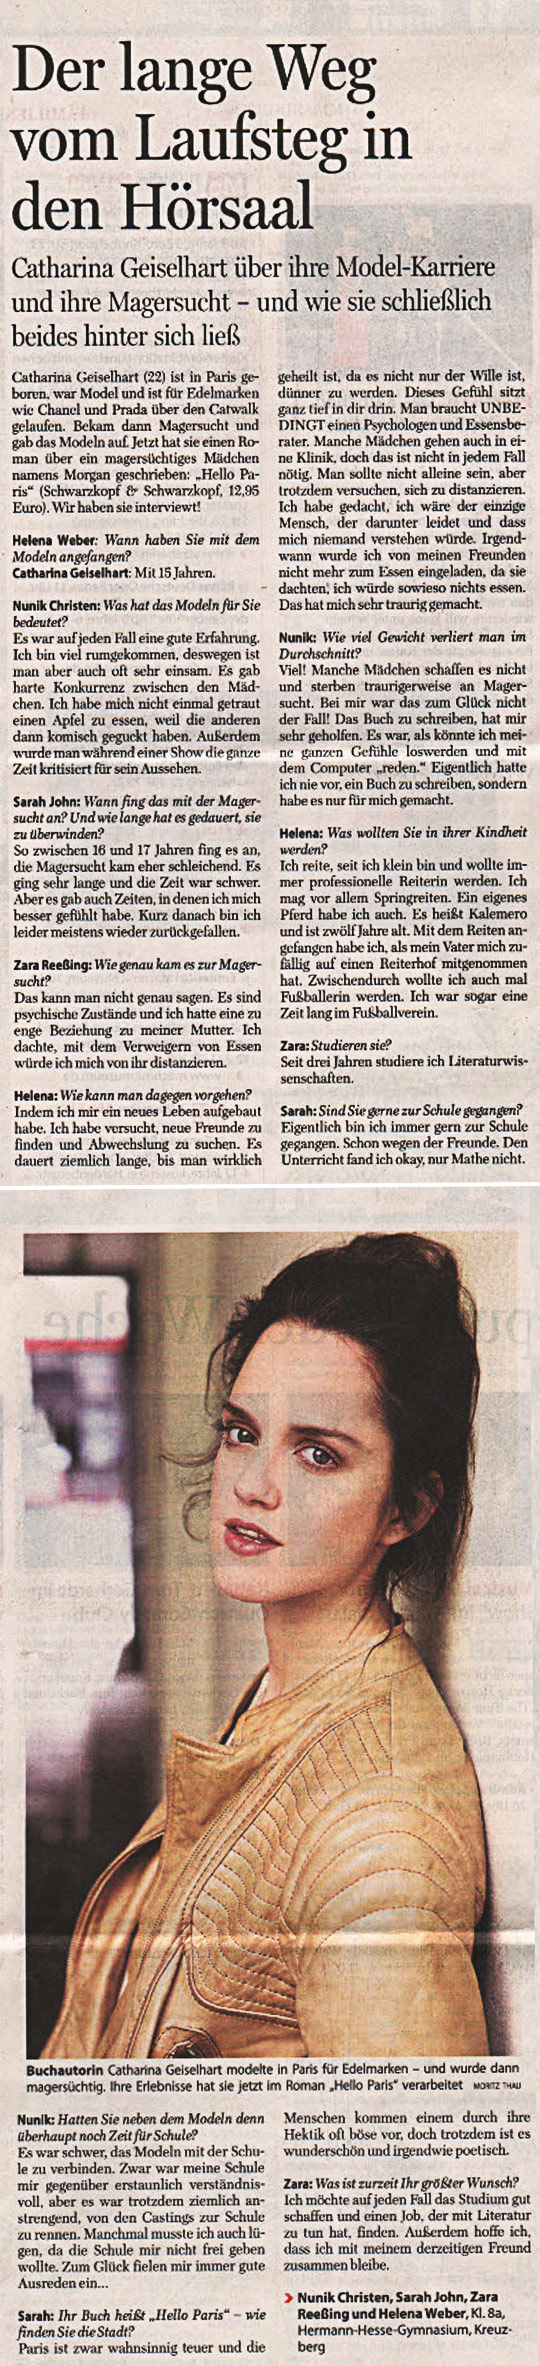 Interview in der Berliner Morgenpost vom 31.10.2011